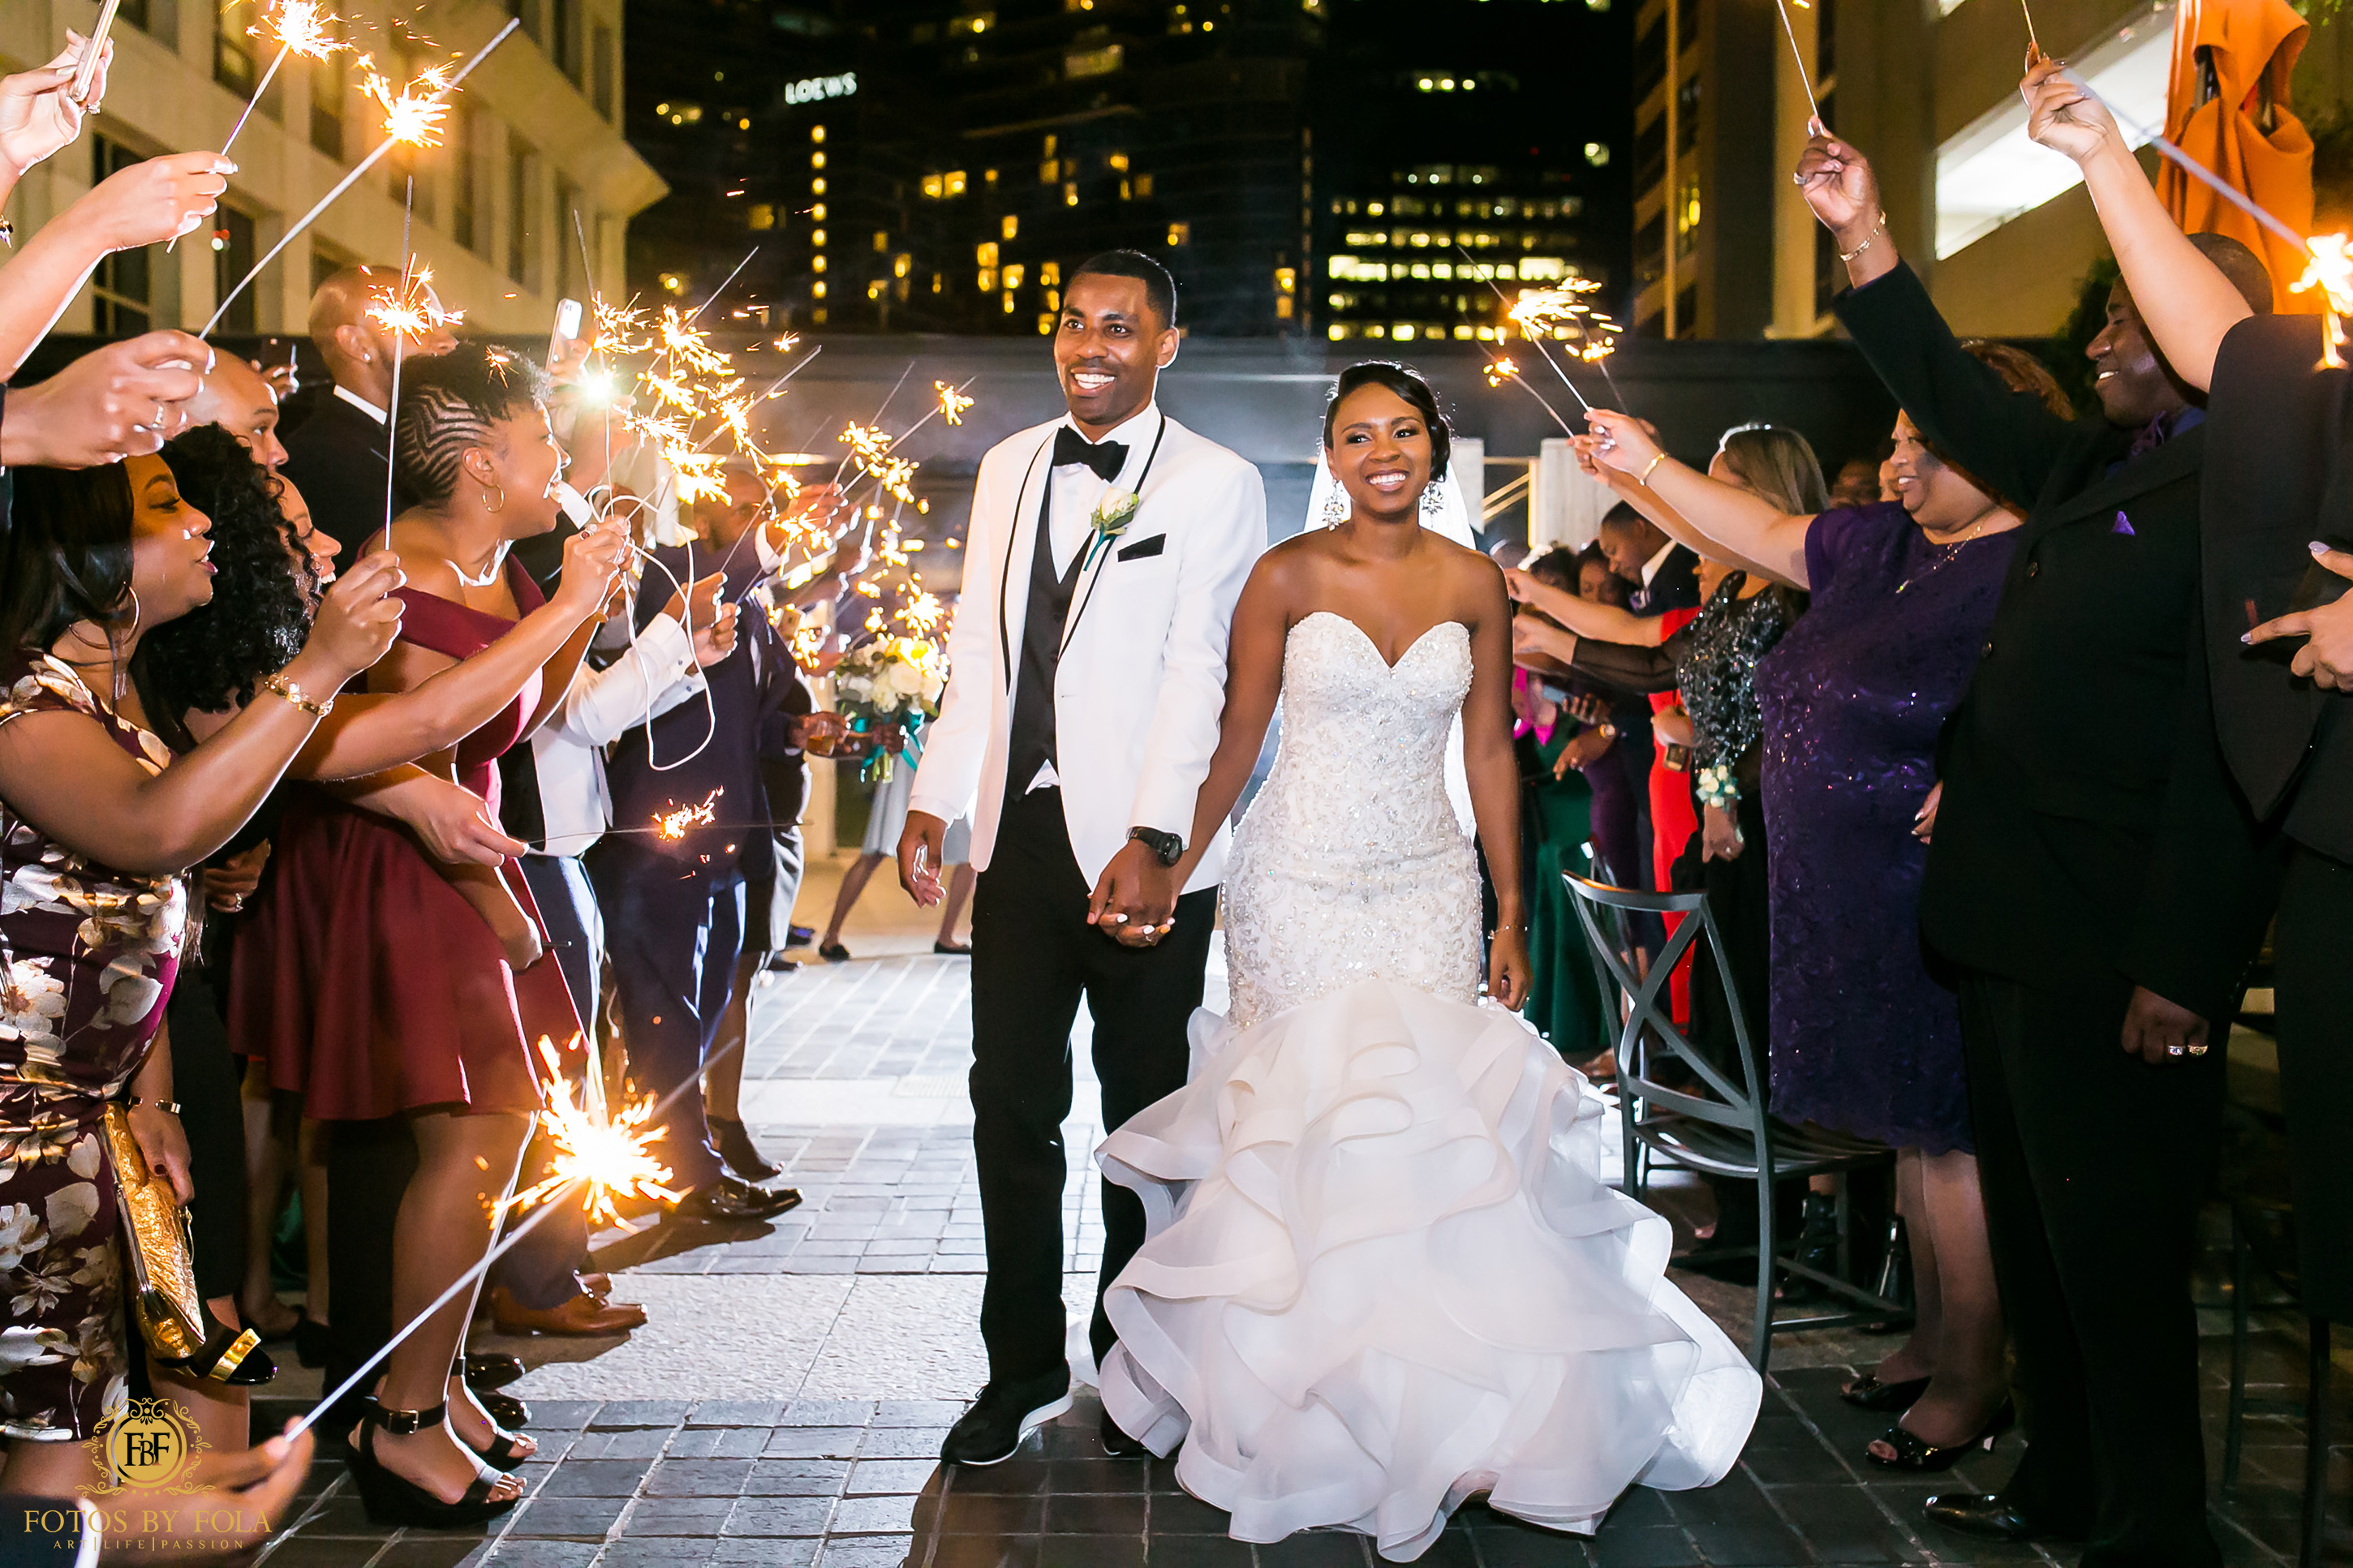 2. Fotos by Fola | Atlanta Wedding Photographer | Peachtree Club Wedding